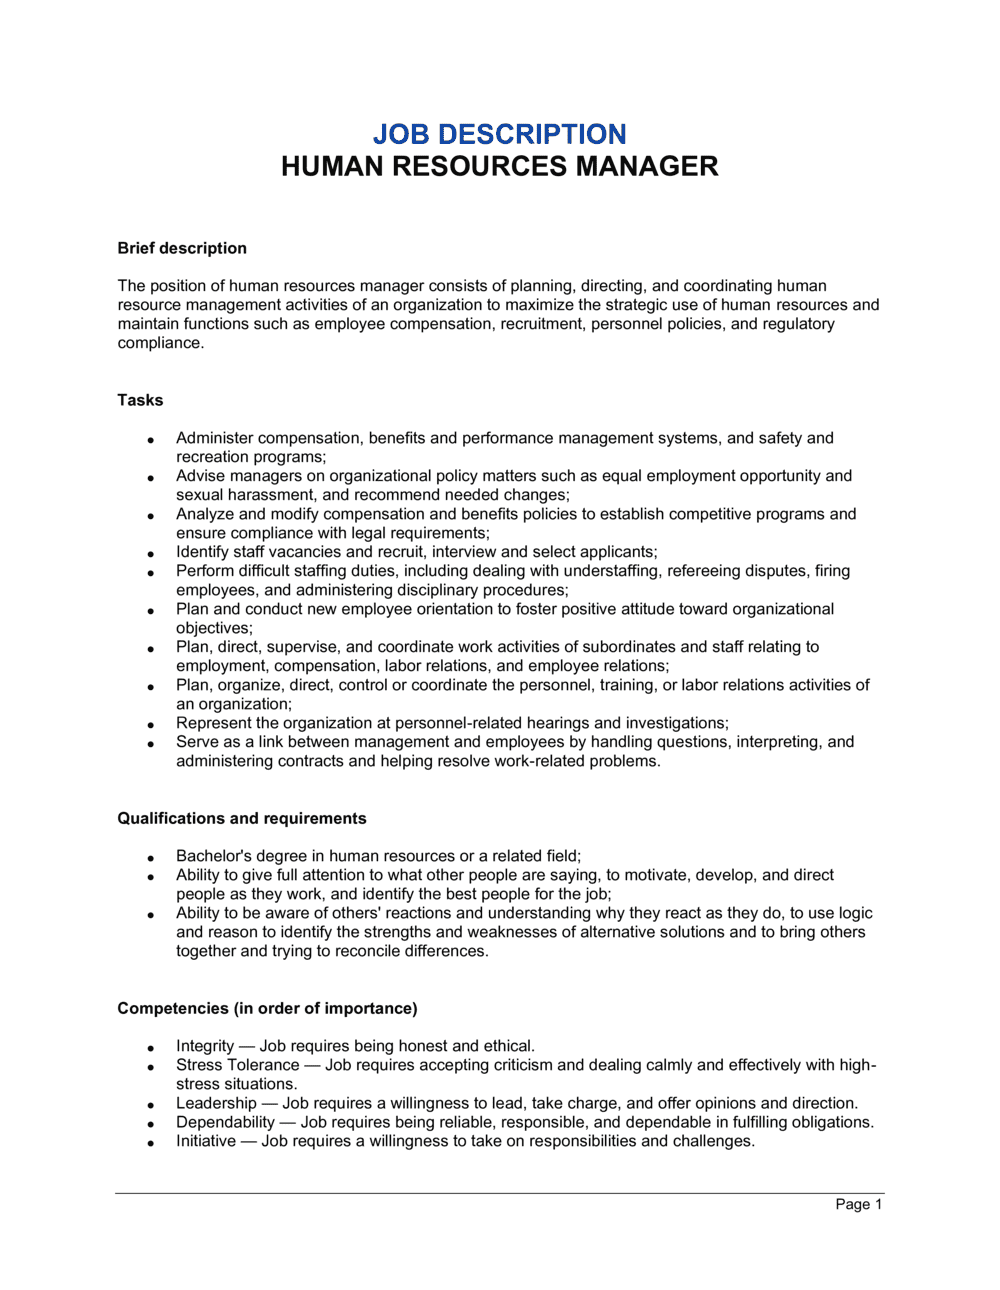 Human Resources Manager Job Description Template | by Business-in-a-Box™